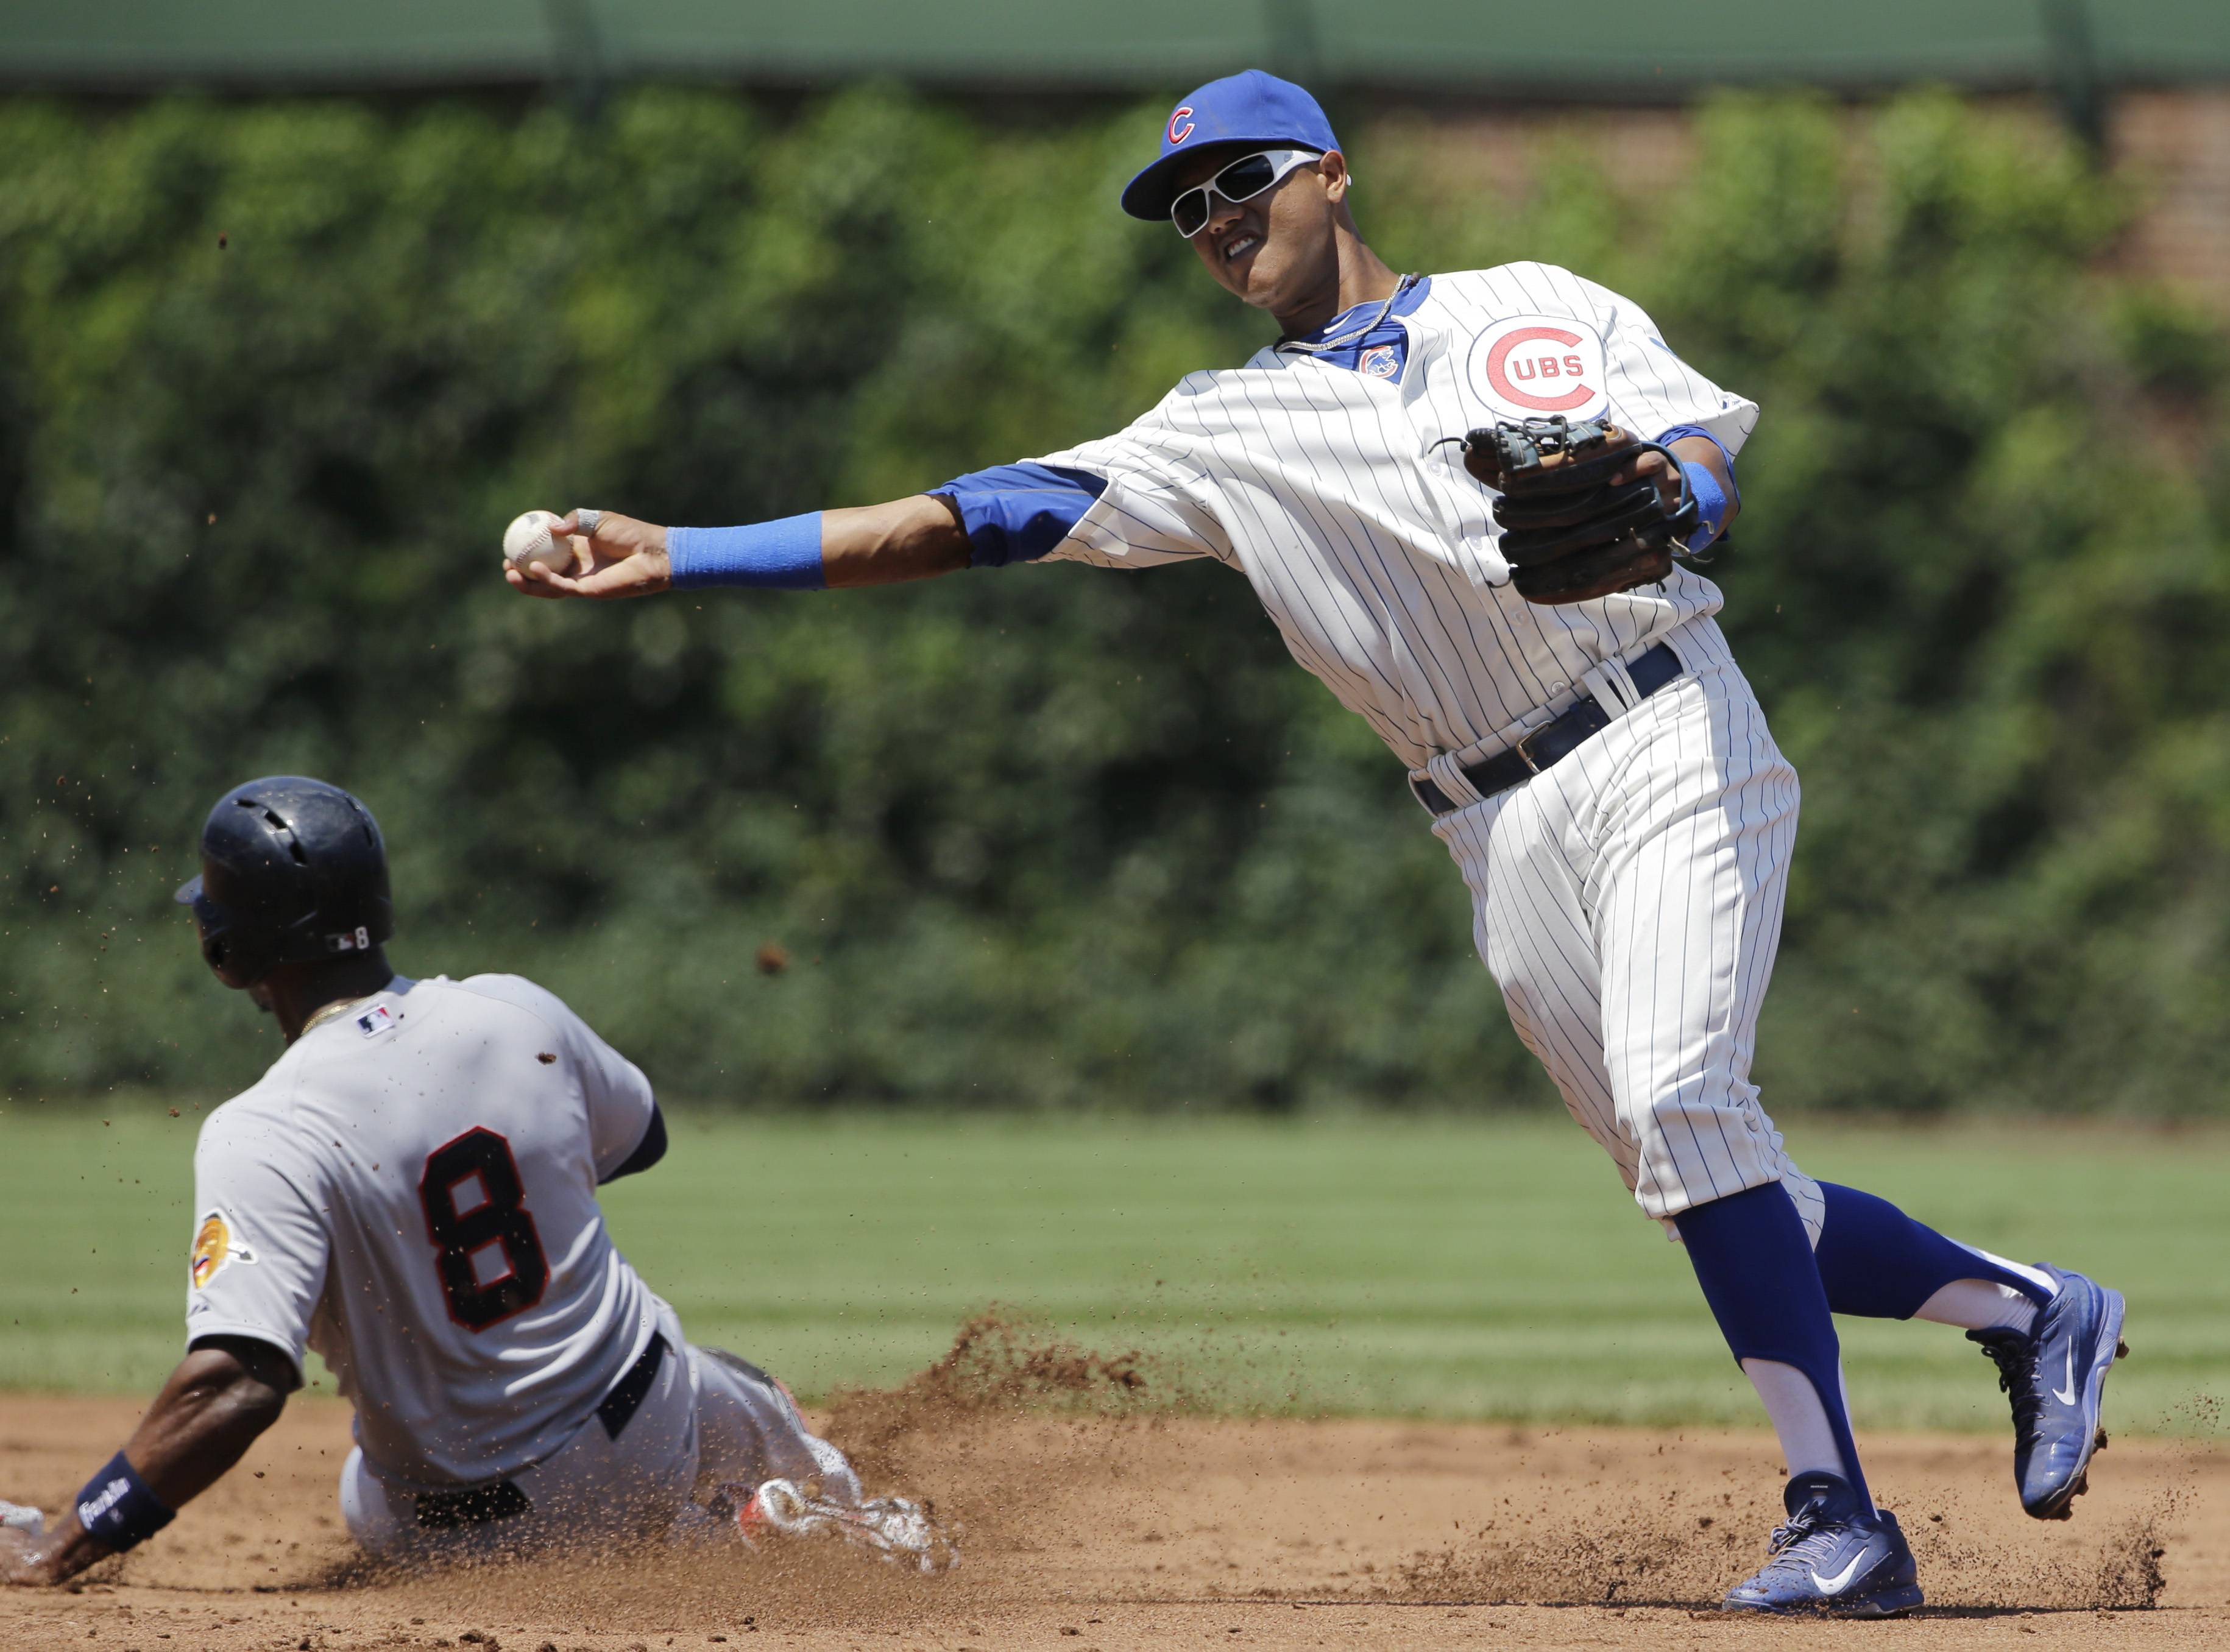 Cubs shortstop Starlin Castro, right, throws to first after forcing out Atlanta Braves Justin Upton (8) at second base during the second inning of a baseball game in Chicago, Sunday, July 13, 2014. Jason Heyward was safe at first base.